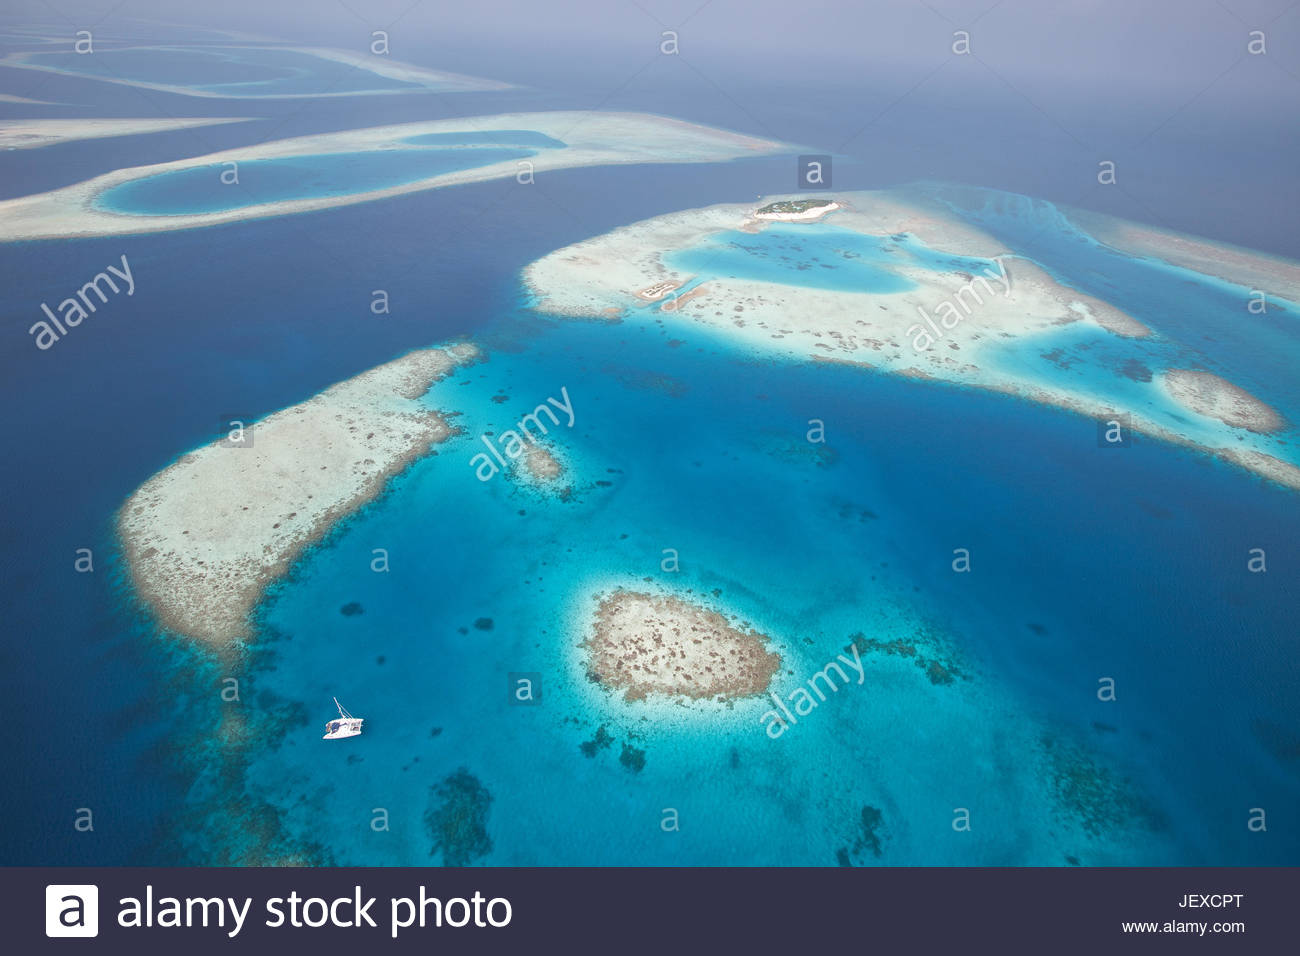 An aerial view of a catamaran anchored near an atoll in the Maldive Islands. - Stock Image